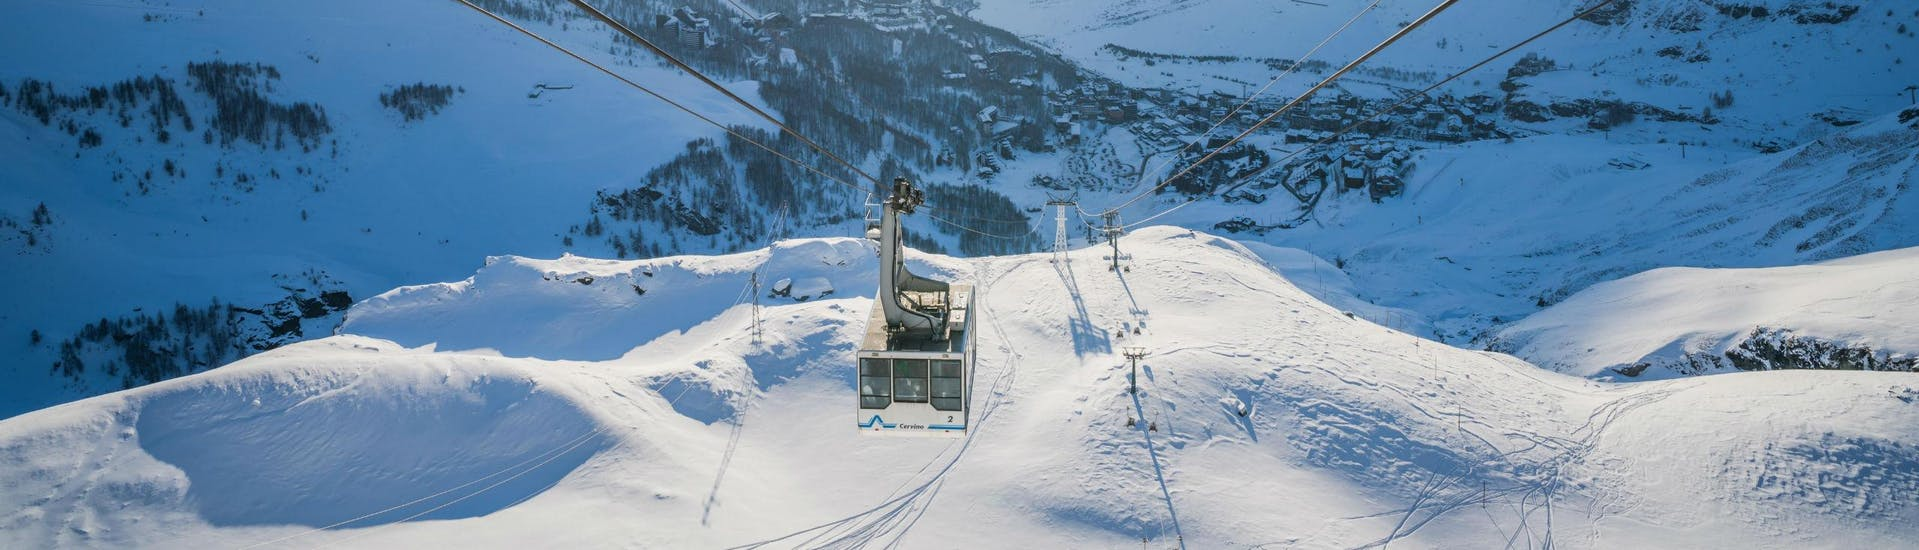 An image of a cable car ascending the mountain in the italian ski resort of Cervinia, where visitors can learn to ski during their ski lessons provided by local ski schools.